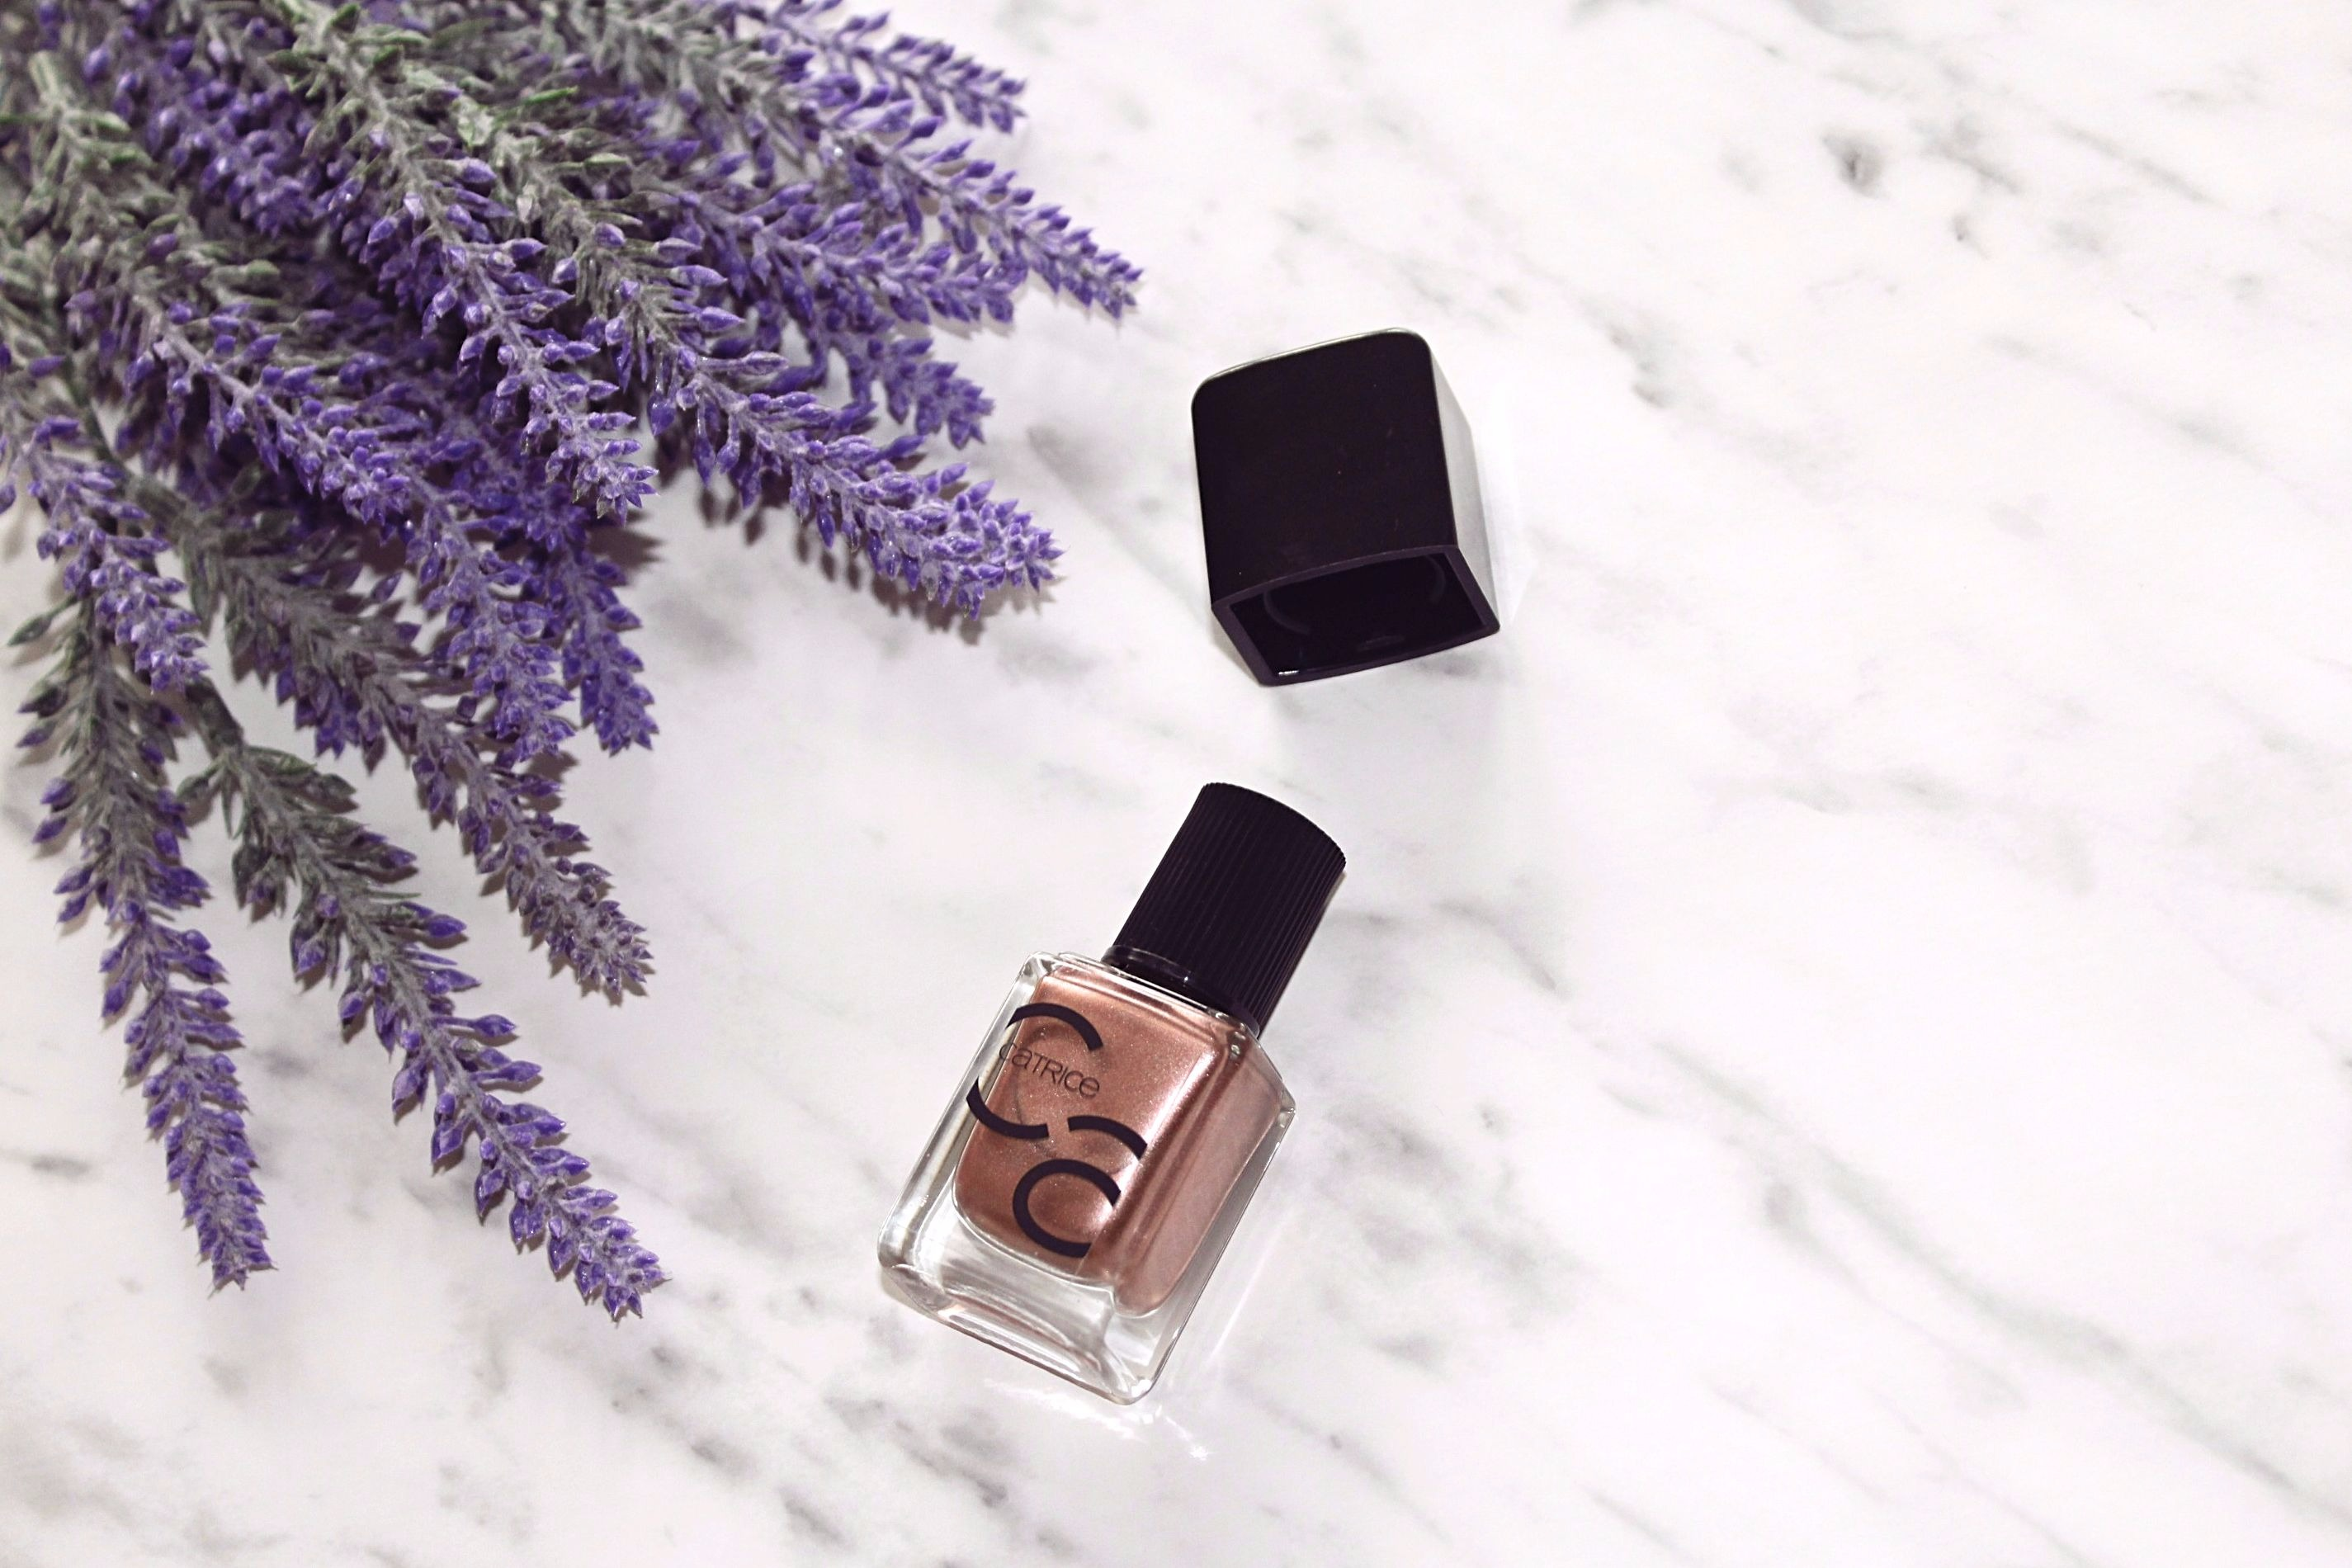 Rose Gold On Nails The Best Way To Celebrate Metallic Nail Trend Simple Serenity